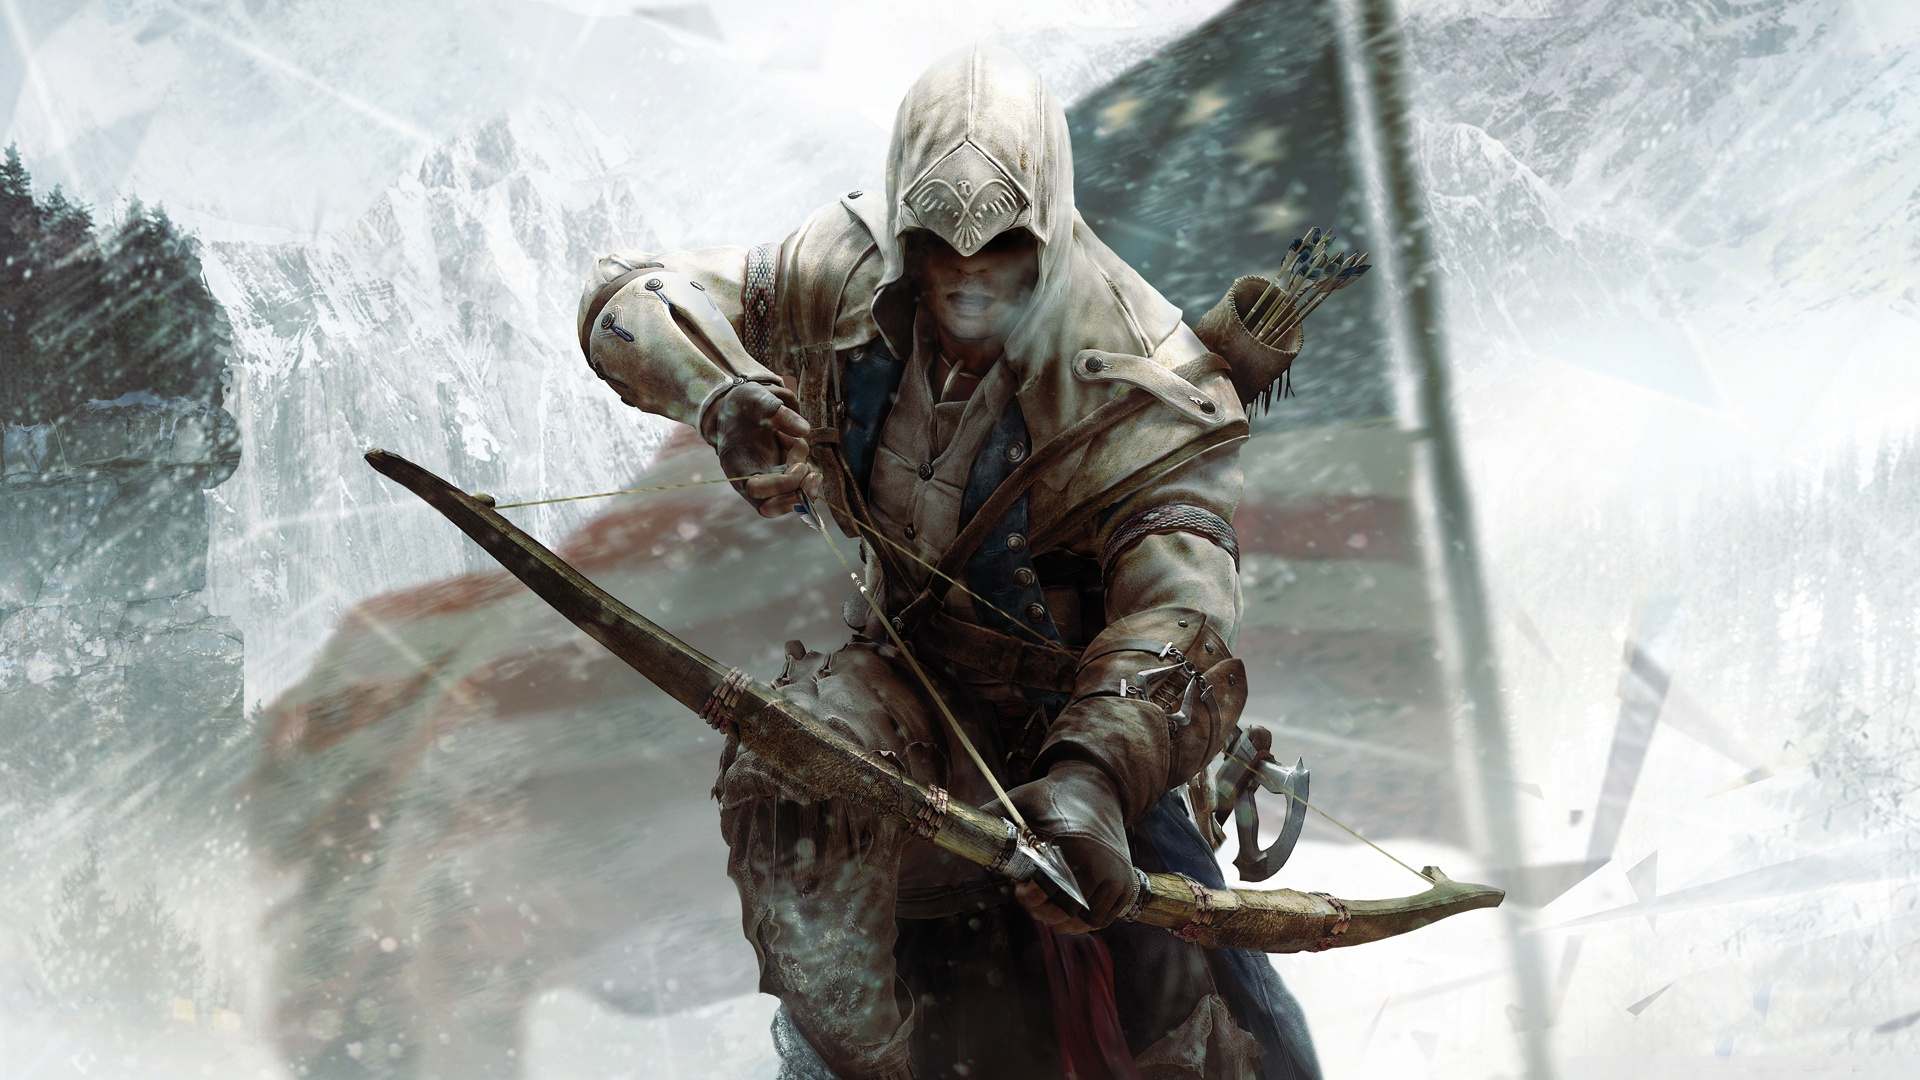 Assassin's Creed III by Artfall